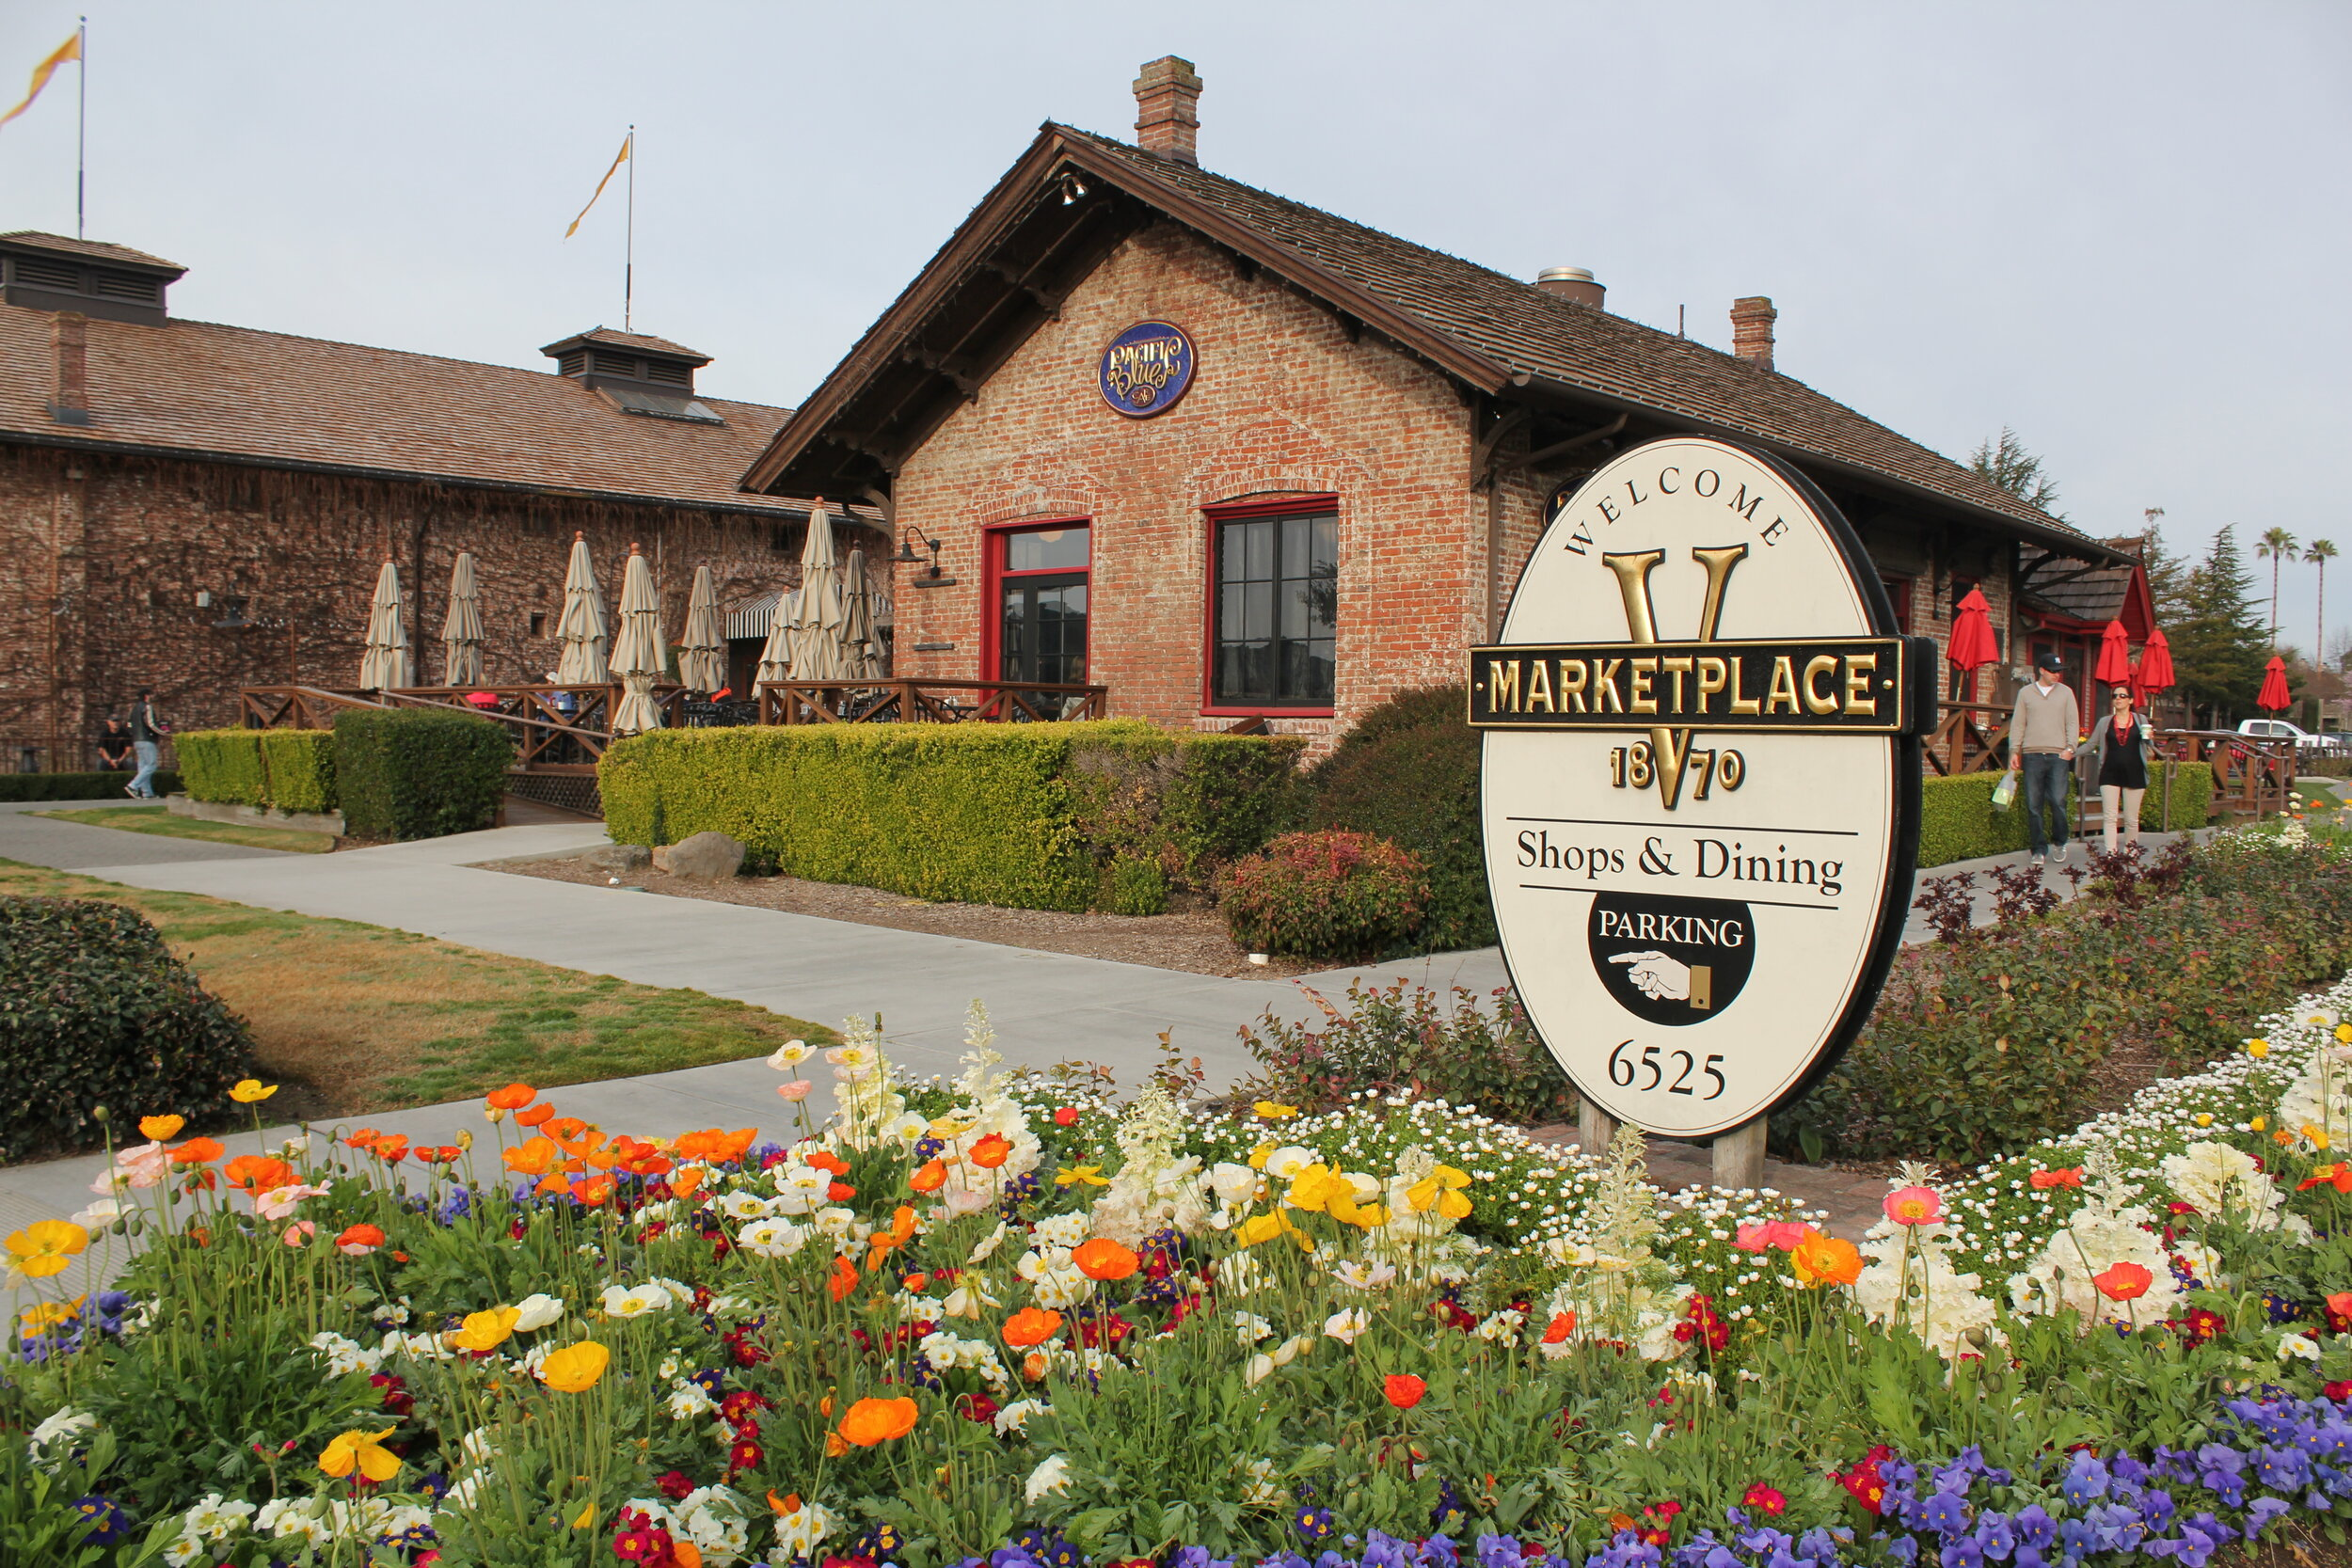 V Marketplace 1870 has plenty of shopping and food options as well as wine tasting.